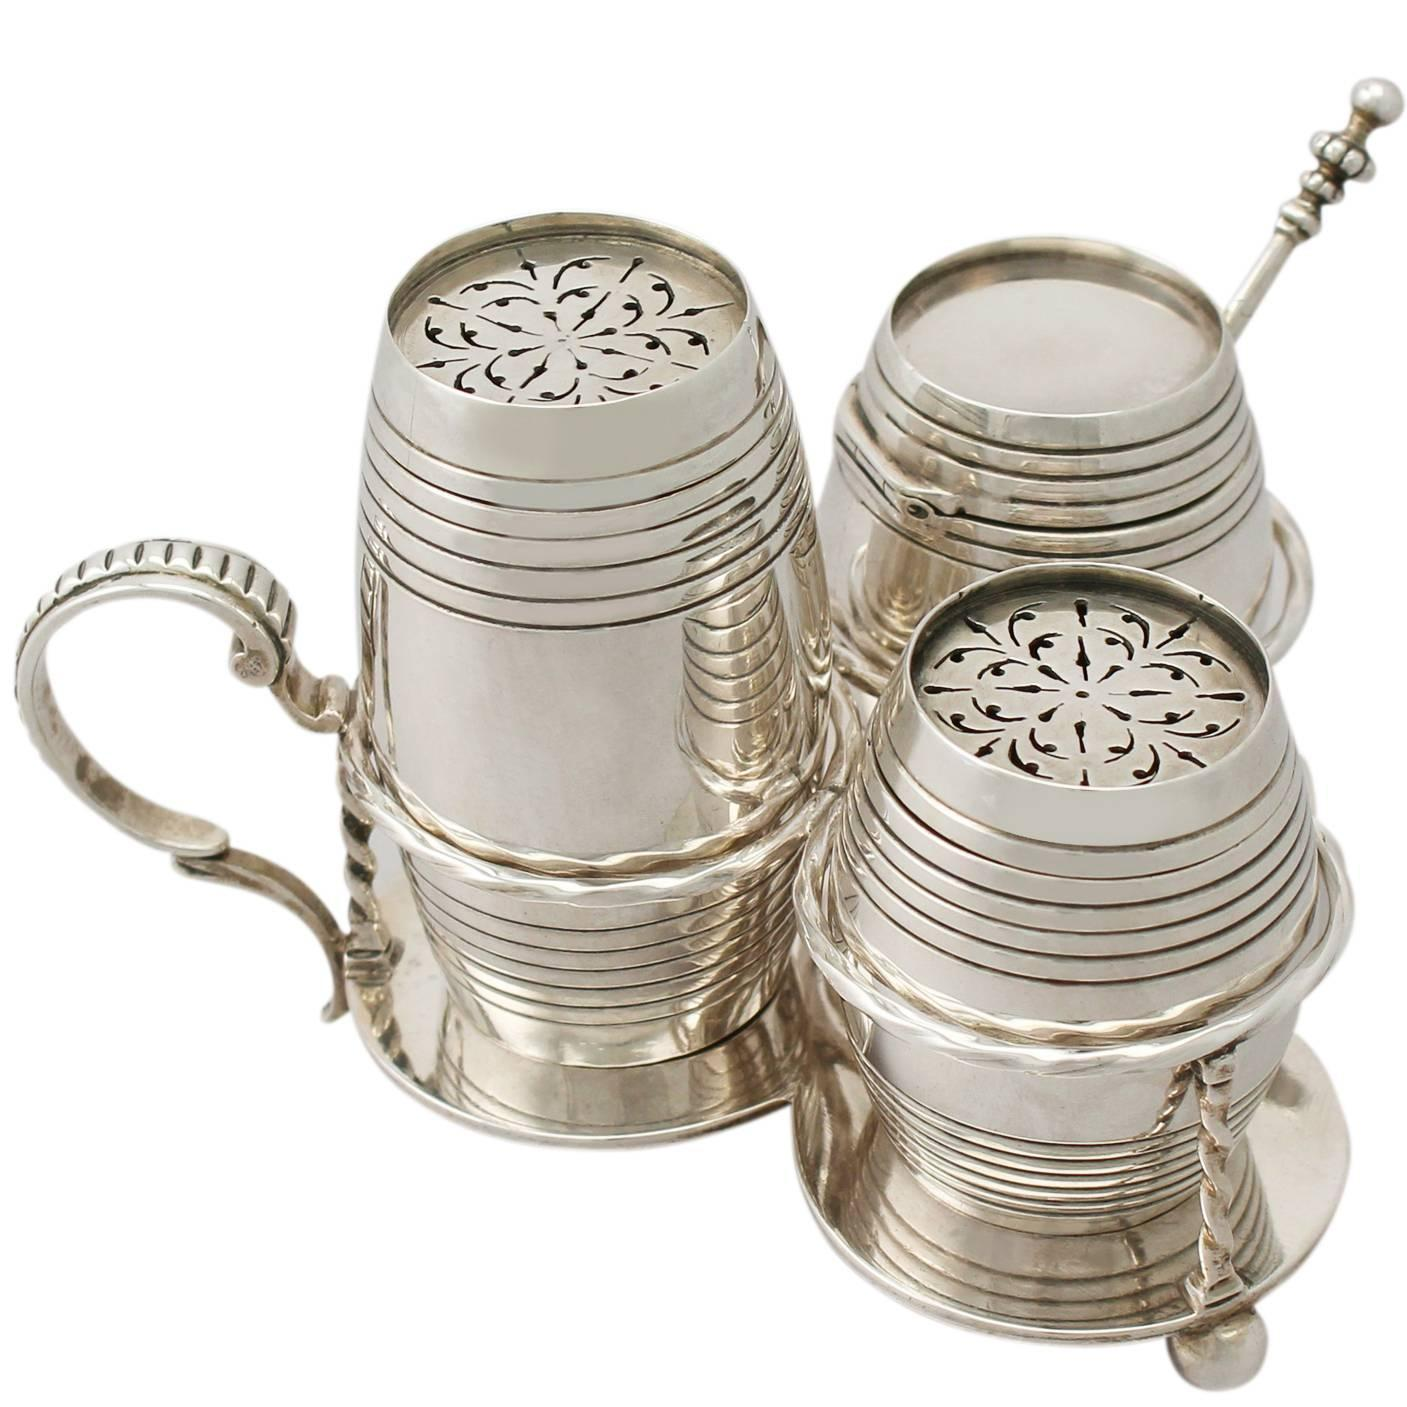 sterling silver cruet set antique victorian for sale at stdibs -